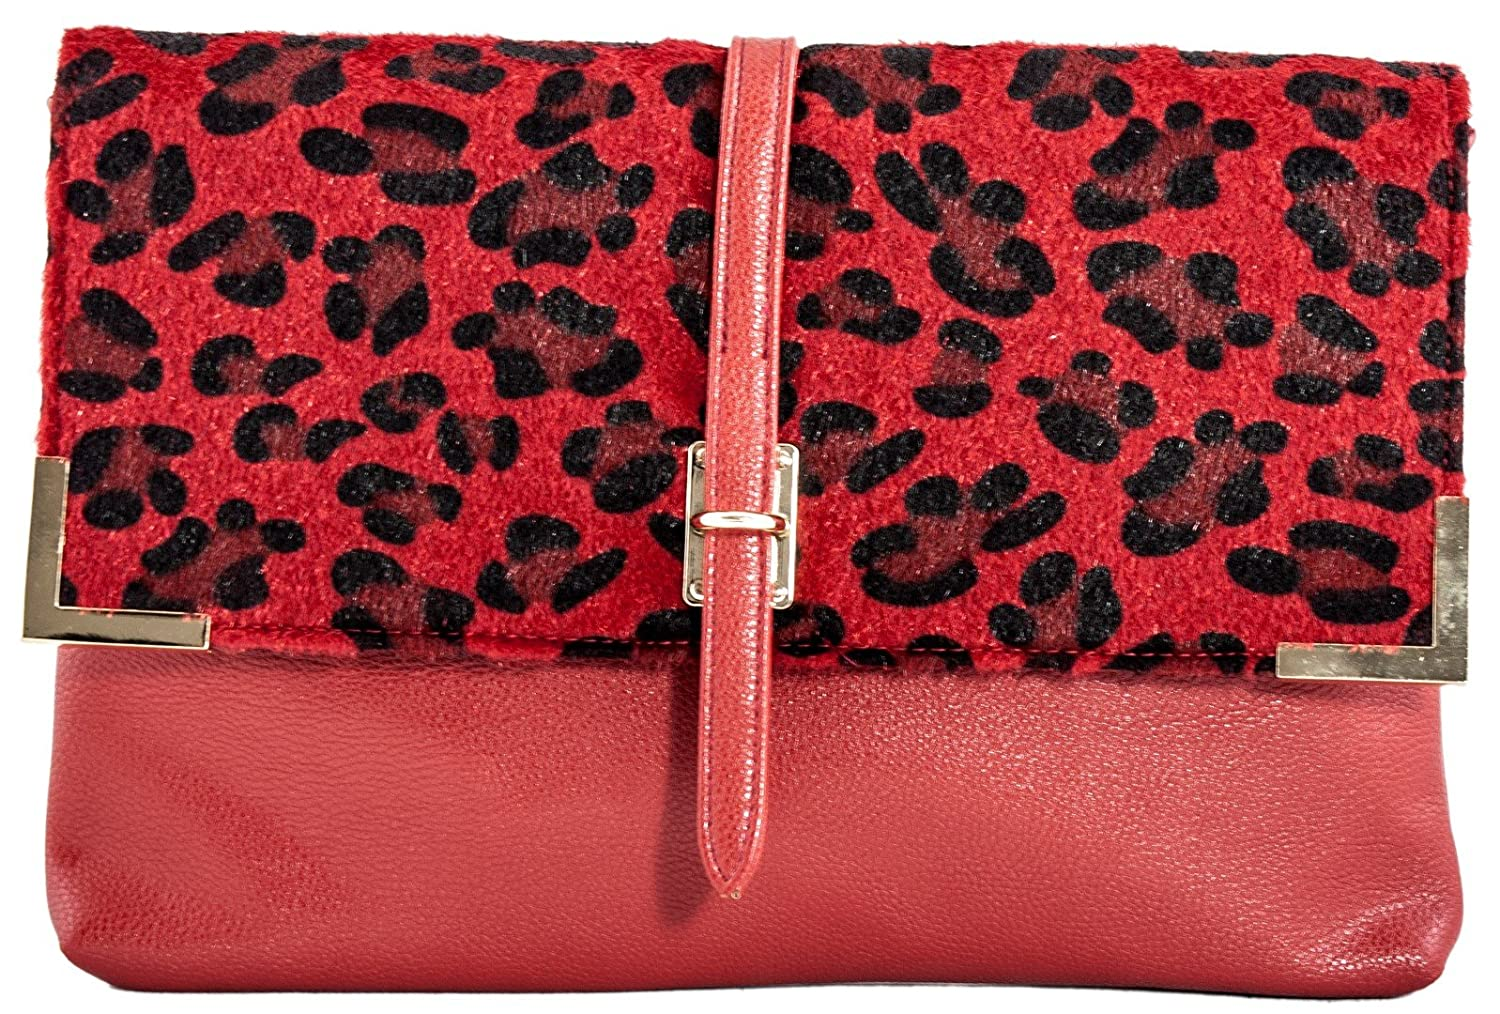 4e8f06a65c17 Girly HandBags New Fur Leopard Clutch Bag Animal Print Furry Leather  Envelope Evening Cheetah Red  Amazon.co.uk  Shoes   Bags